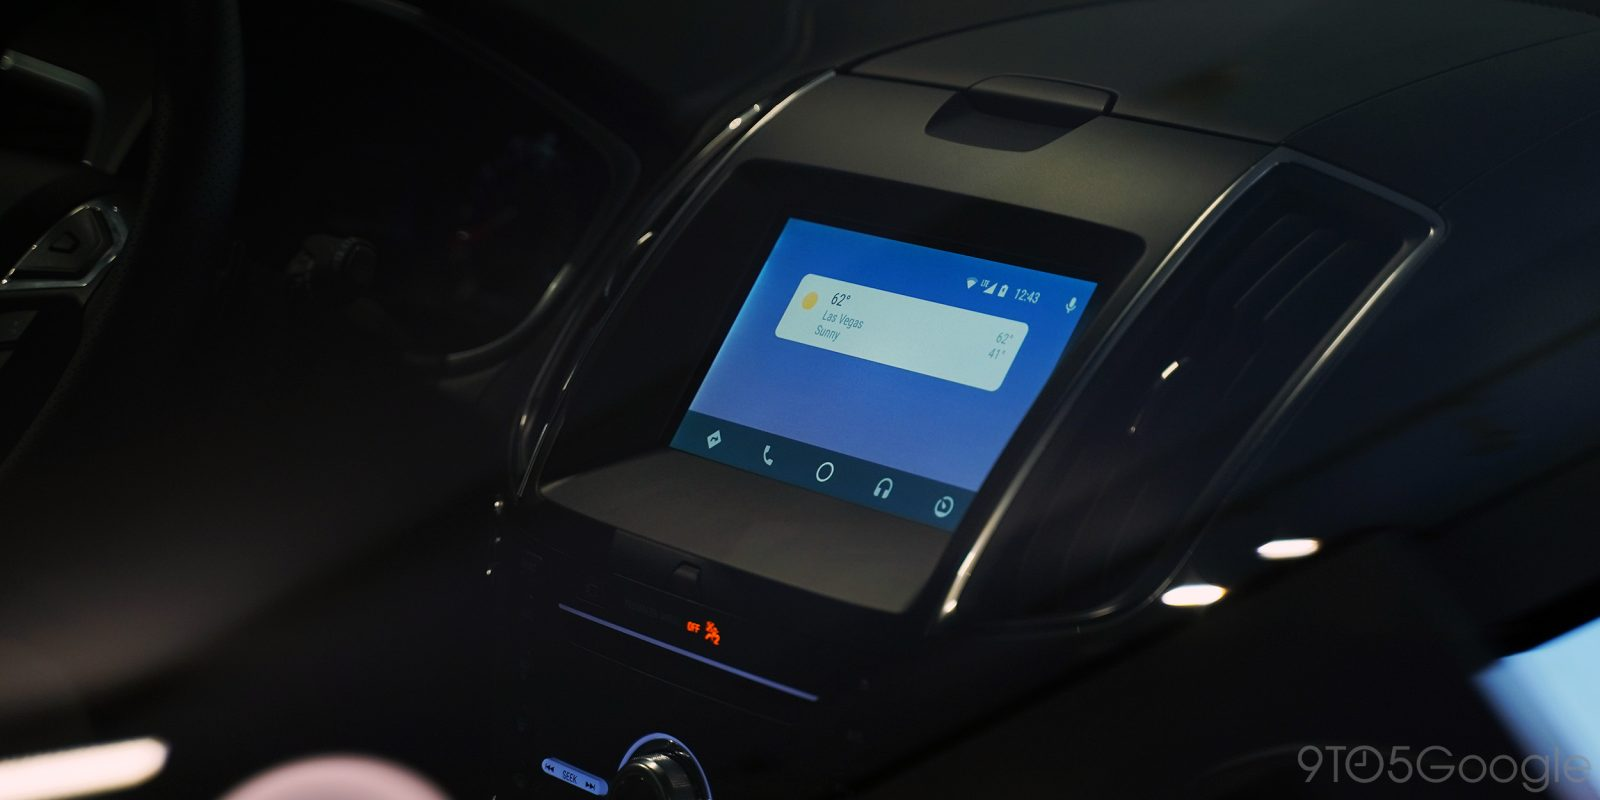 Toyota adding Android Auto support to cars for the first time